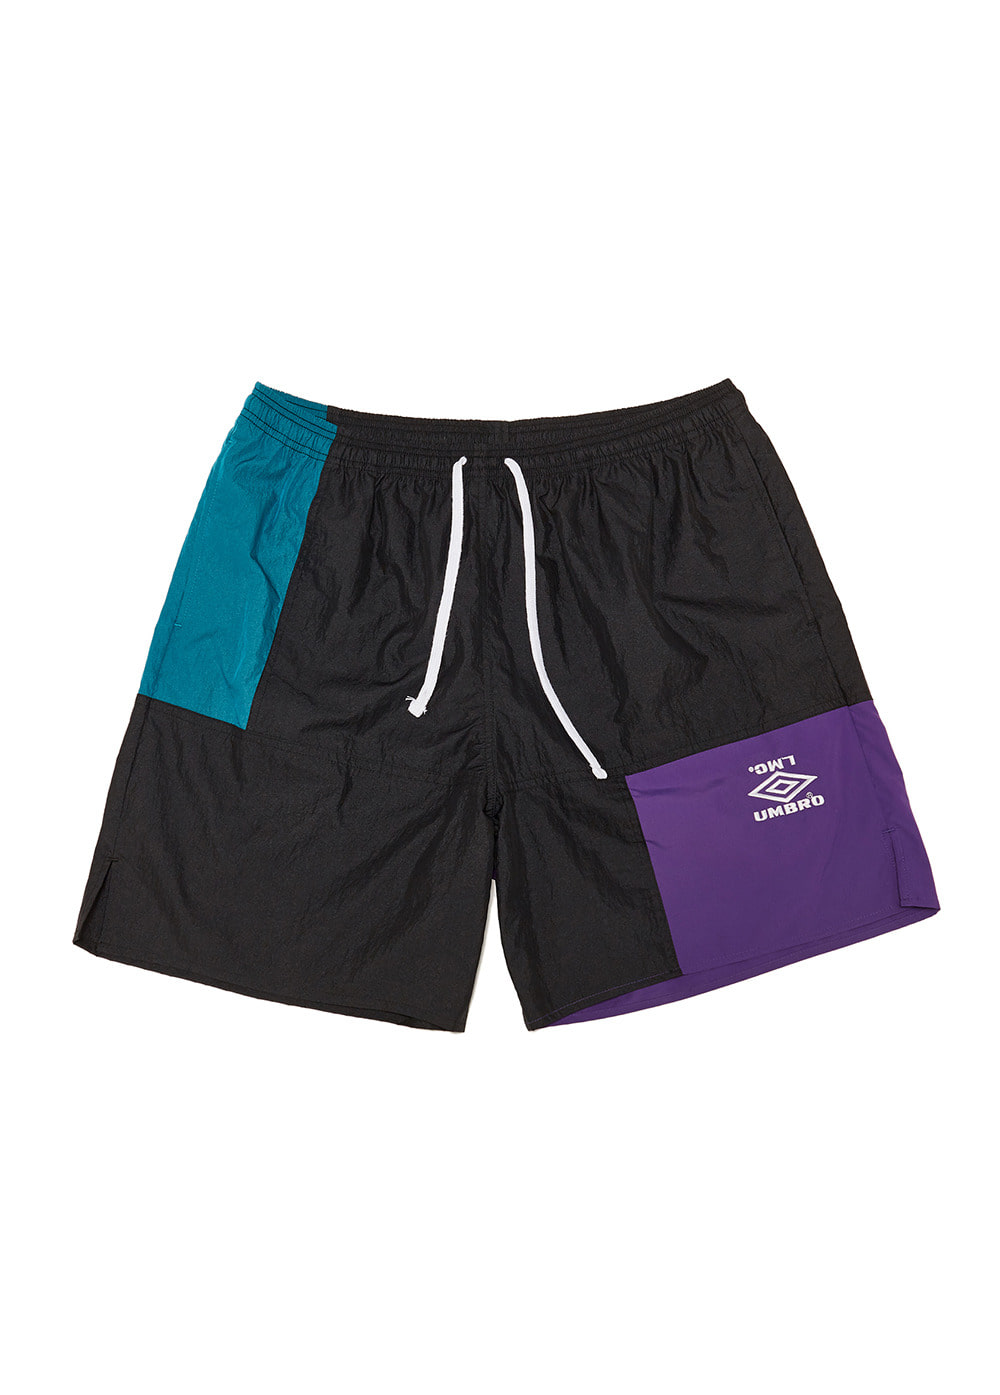 UMB X LMC RETRO SHORTS black